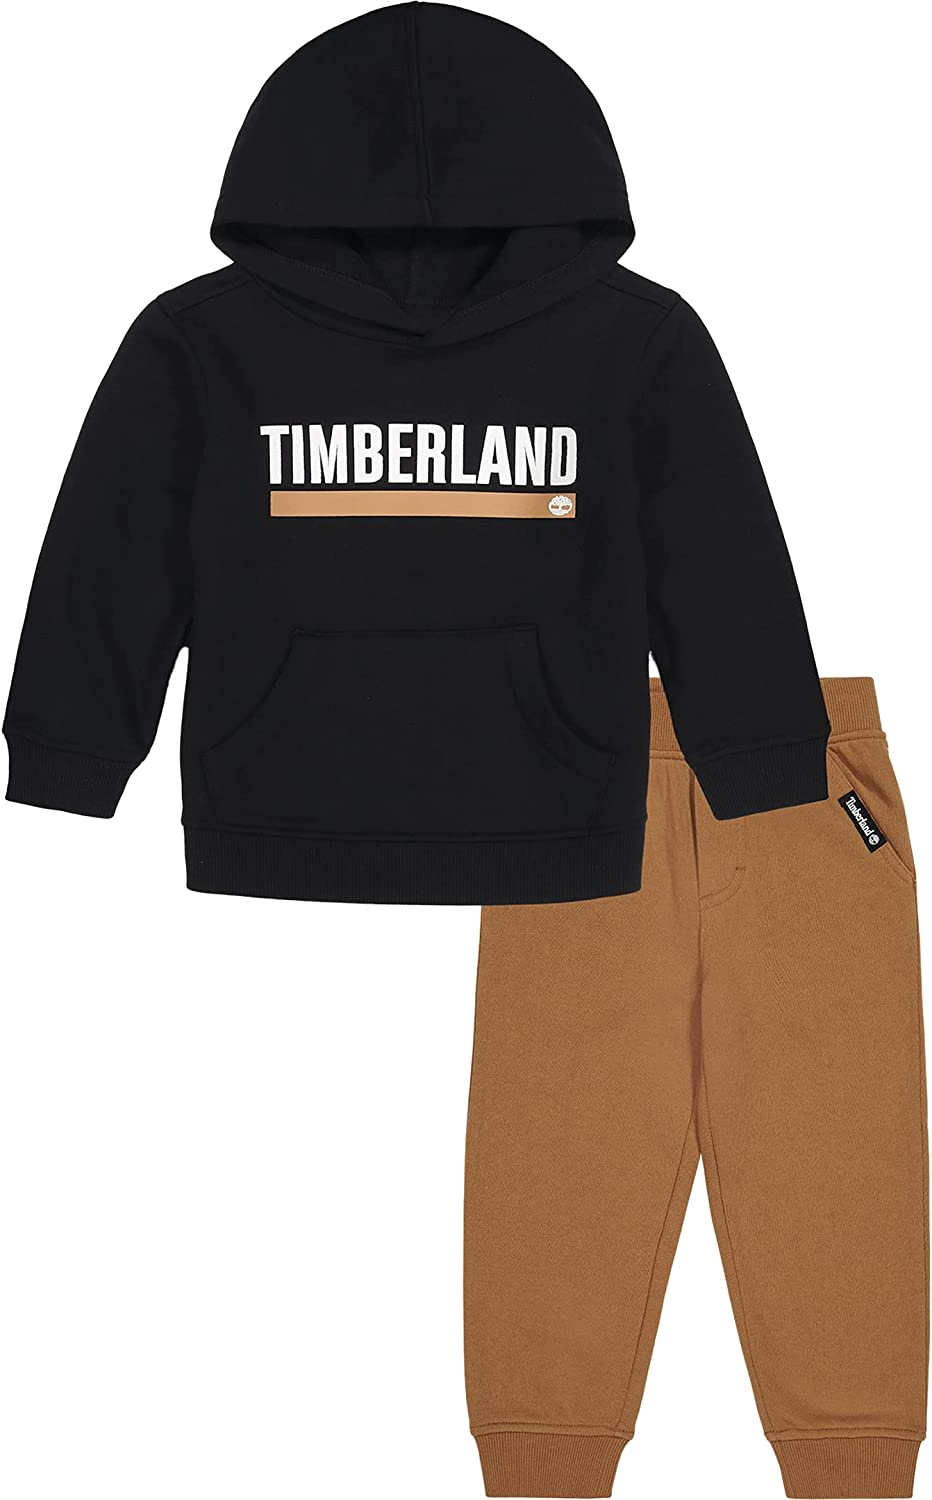 Timberland Baby Boys' 2 Pieces Hooded Pullover Pants Set